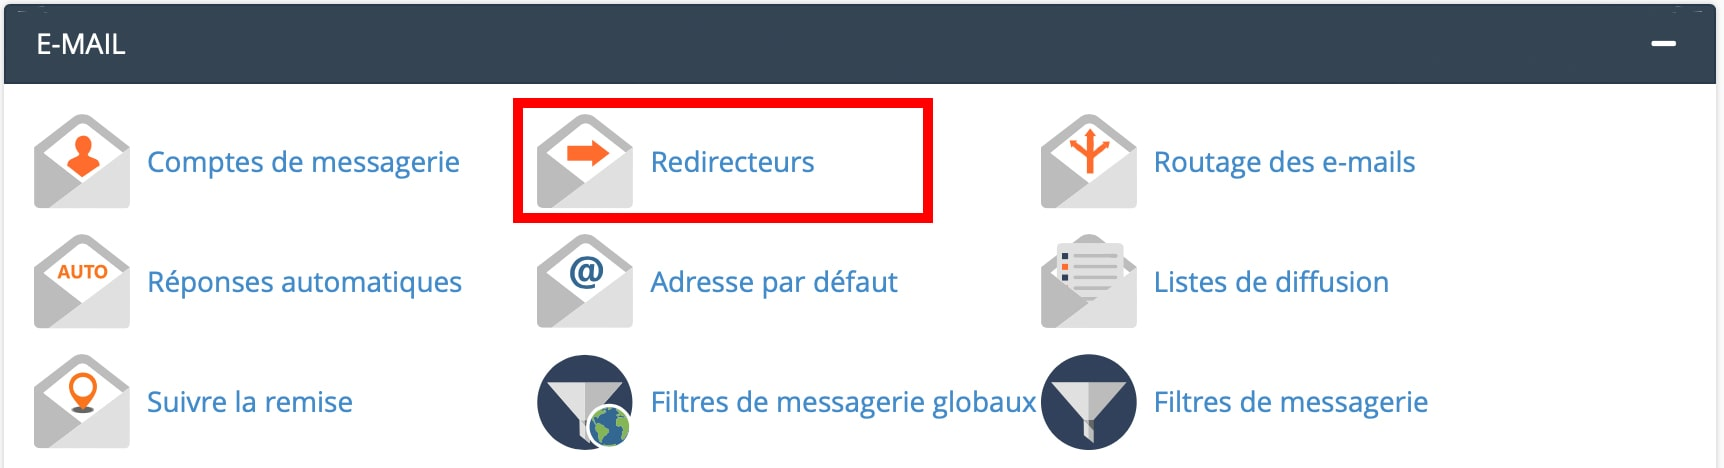 Redirecteurs emailcPanel